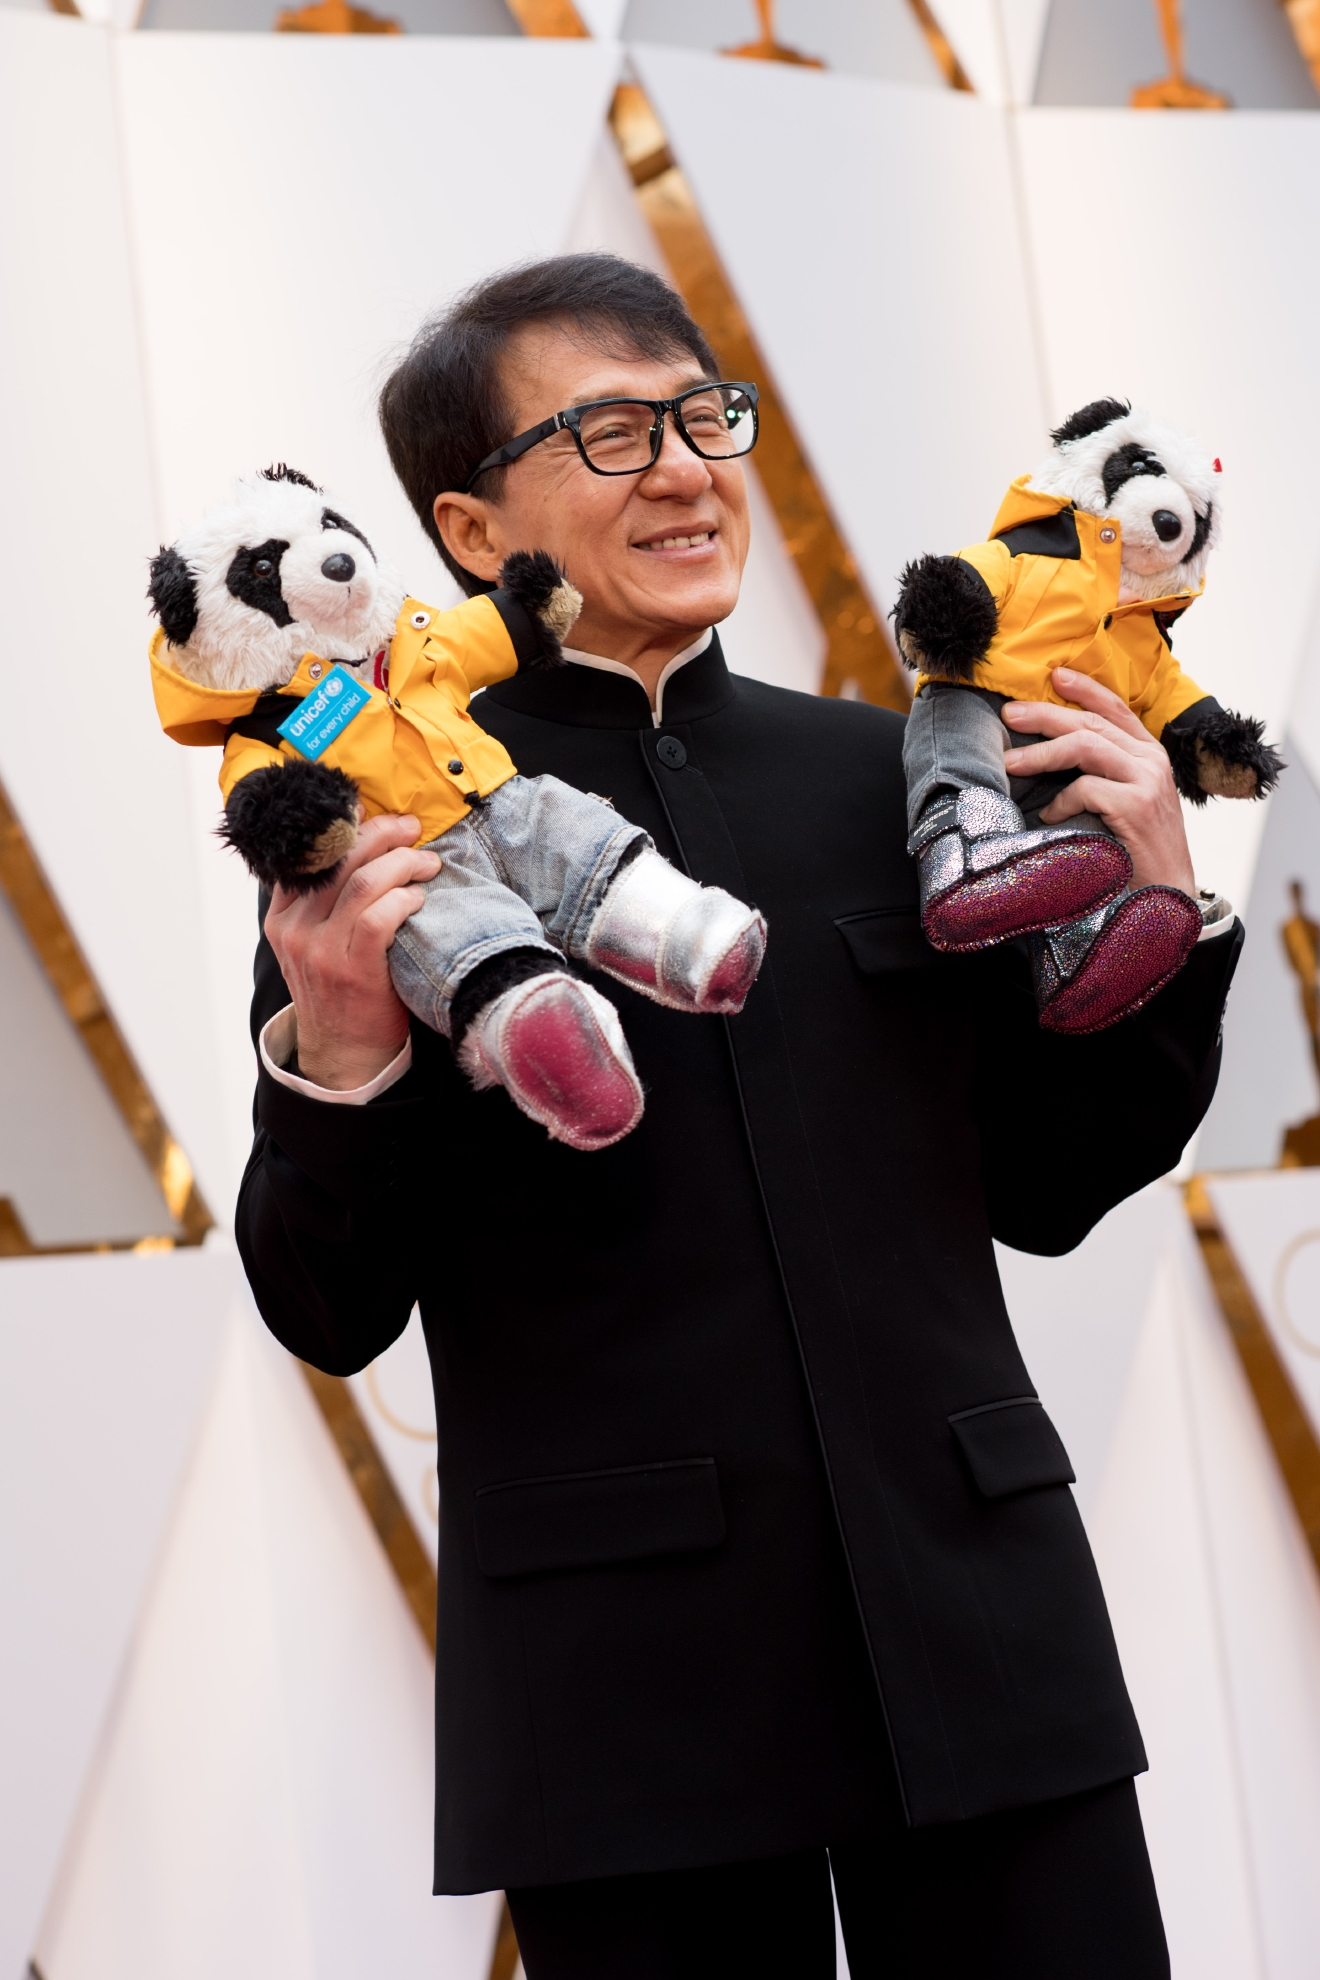 Jackie Chan arrives on the red carpet of The 89th Oscars® at the Dolby® Theatre in Hollywood, CA on Sunday, February 26, 2017. (Michael Yada / ©A.M.P.A.S.)